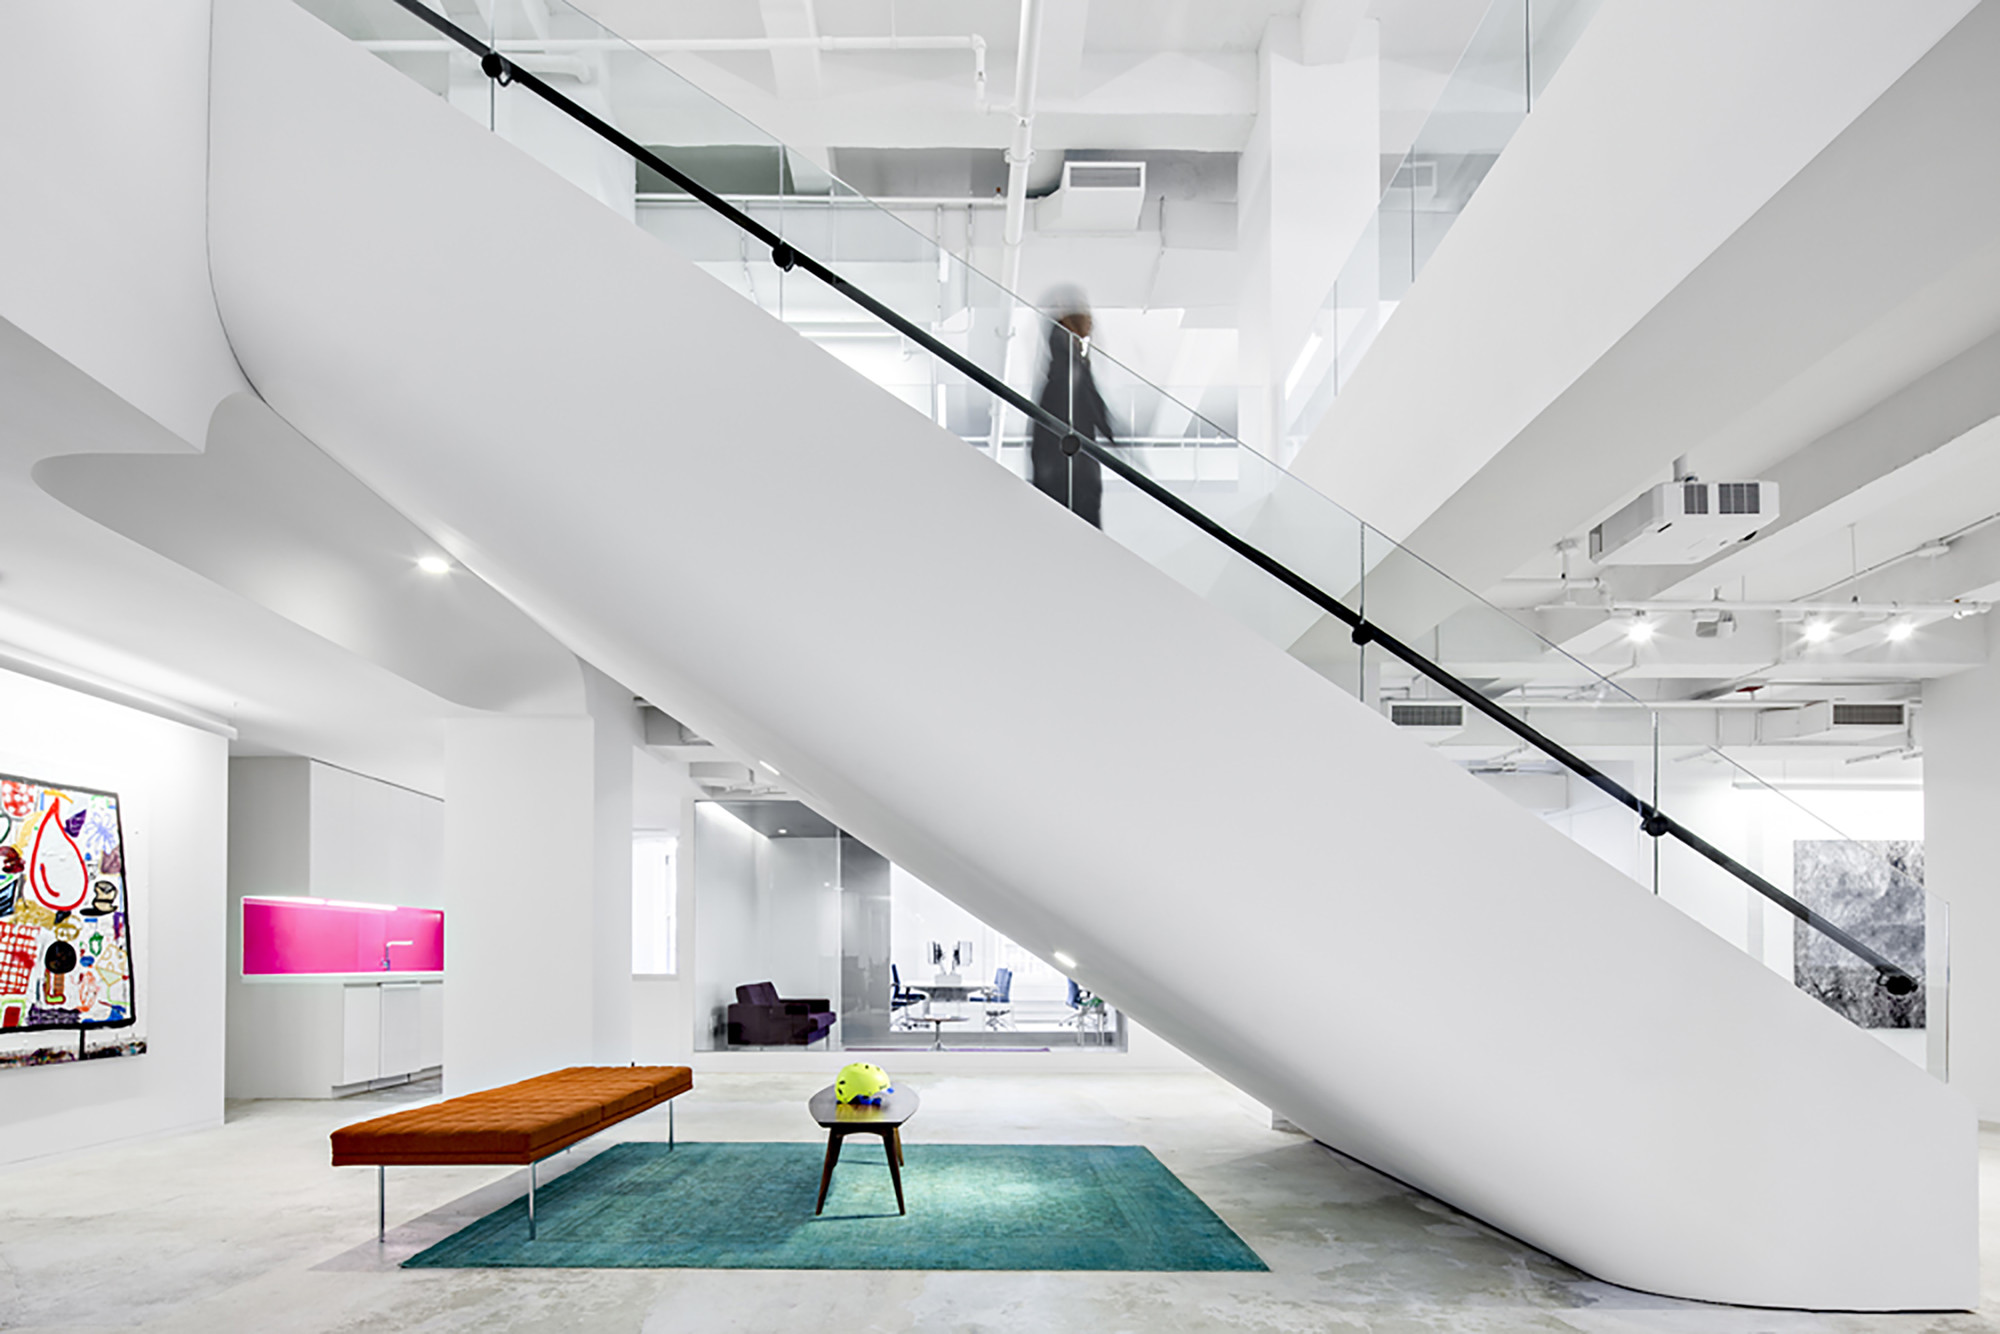 Red Bulls New York Offices INABA ArchDaily